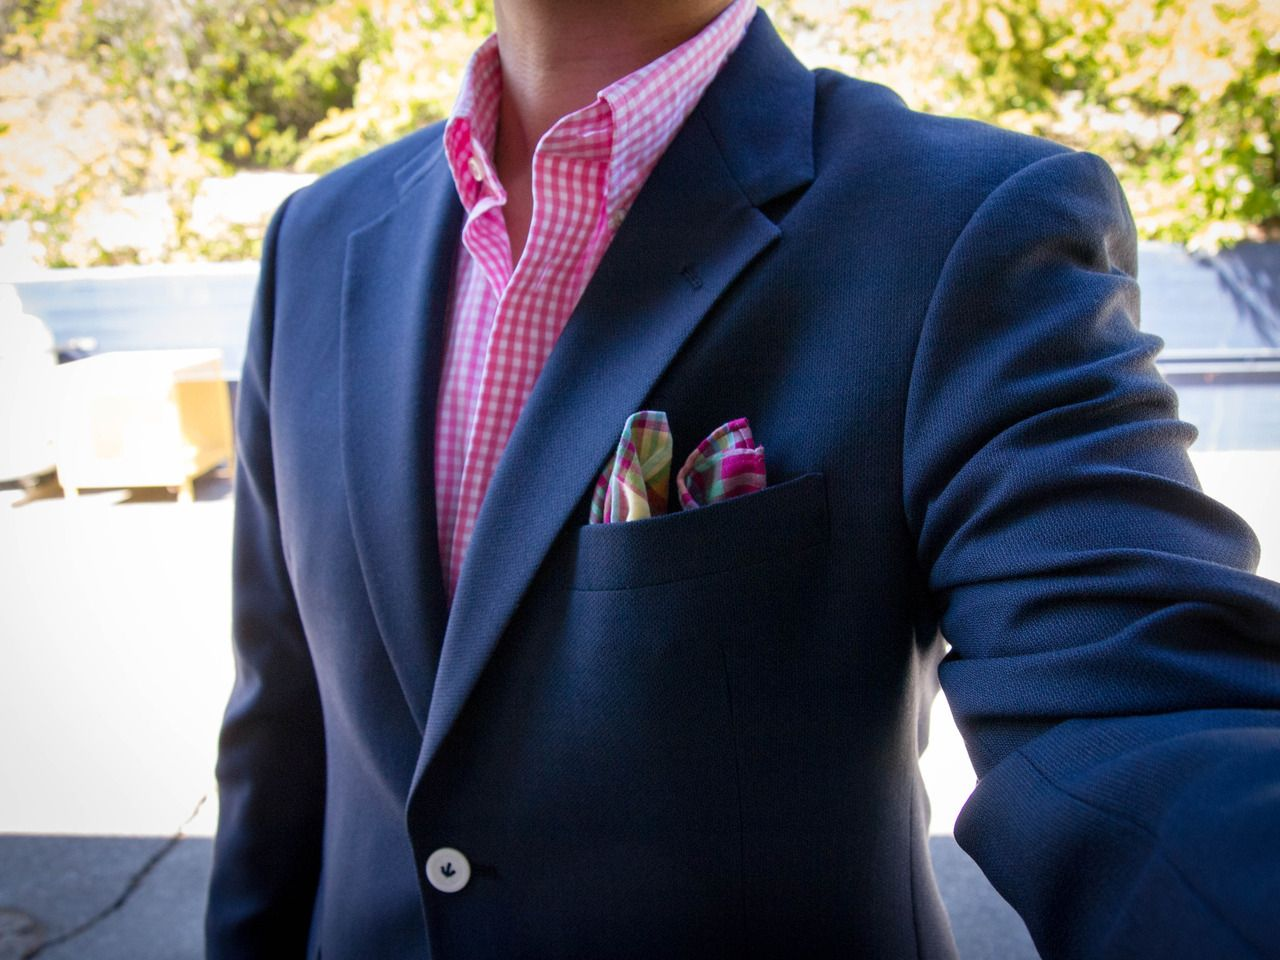 f4e263d7d8470 A pocket square is worn to compliment the suit, so it should be inspired by  the tie's color, but not exactly the same as the tie's pattern.